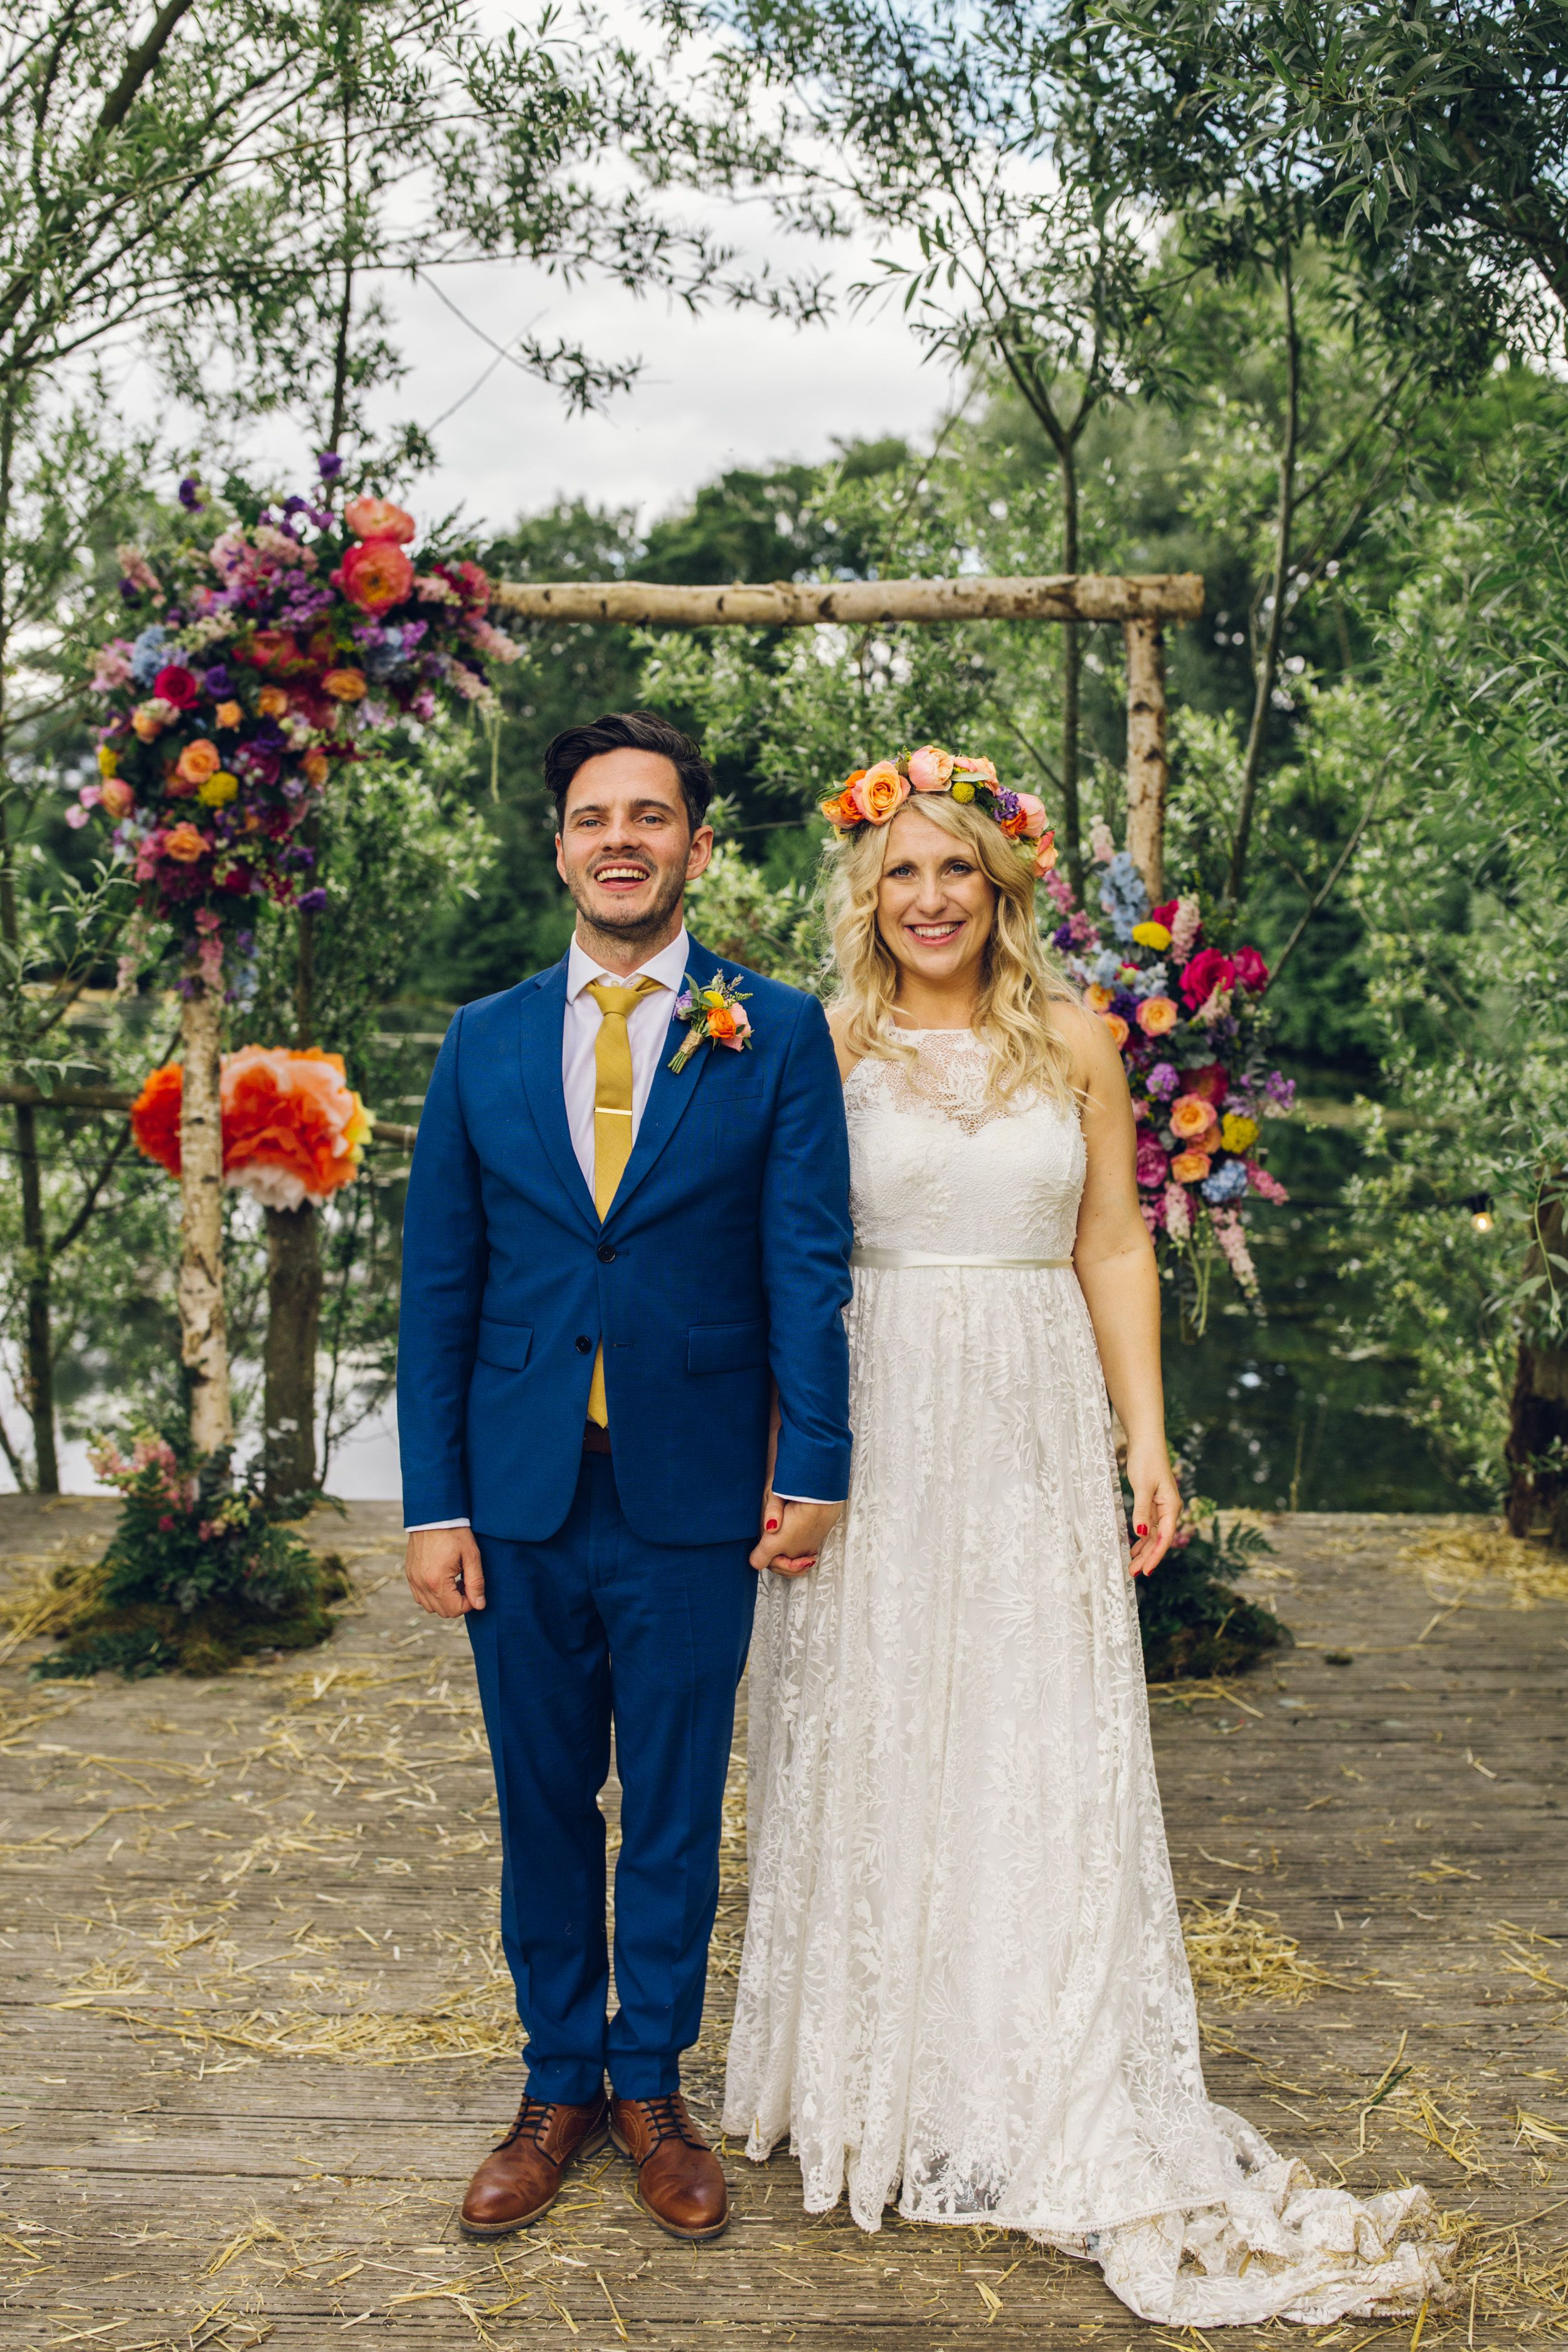 Quirky Natural Outdoor Festival Wedding: How To Plan Your Festival Wedding